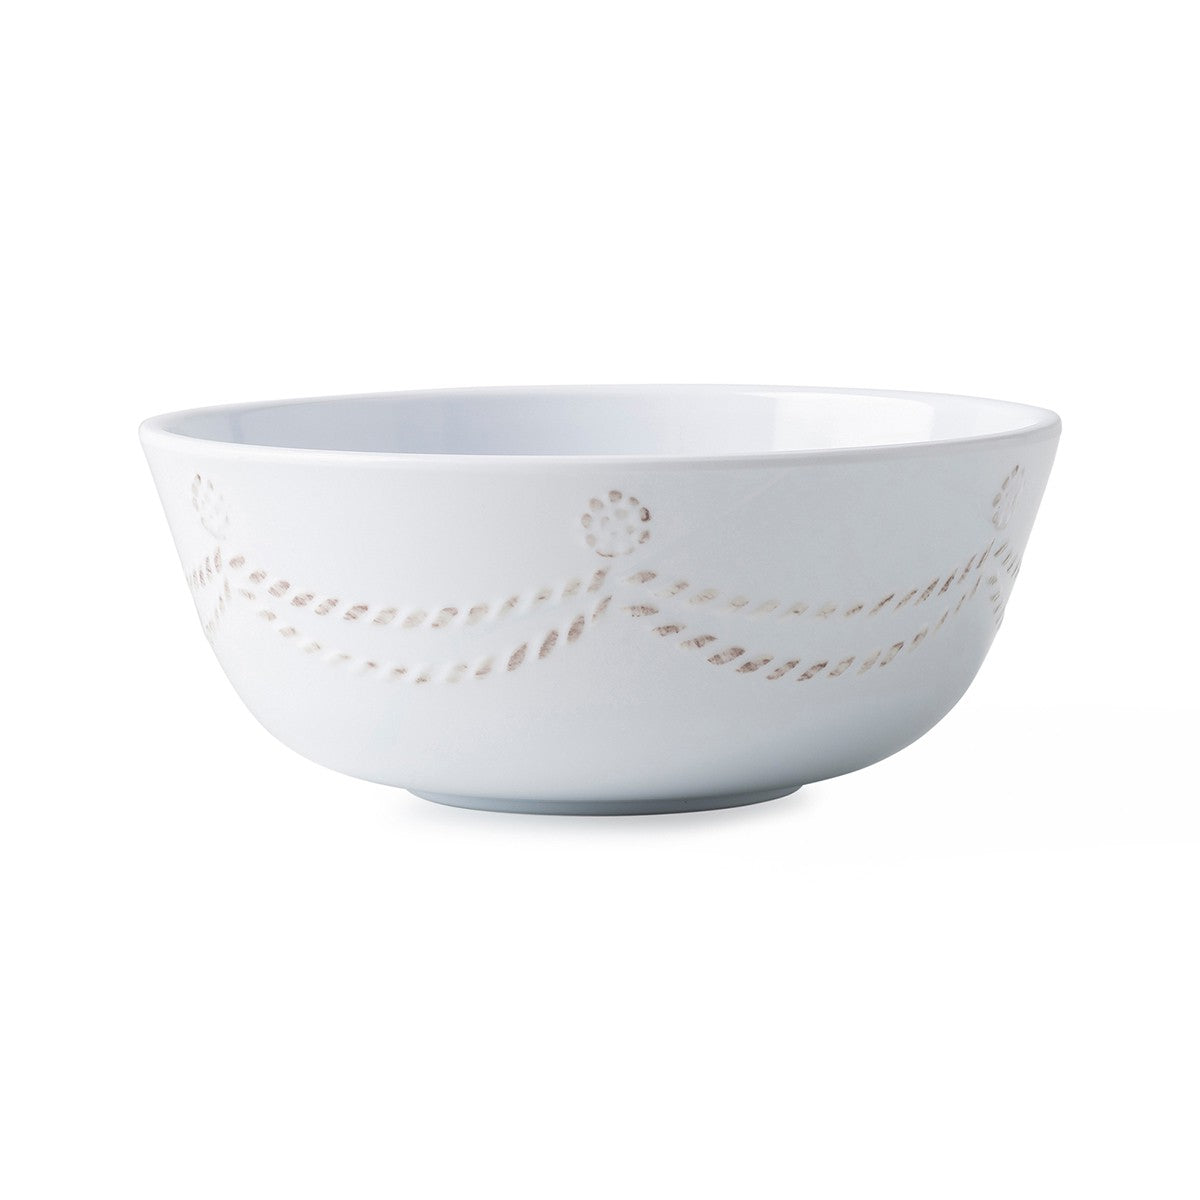 Berry & Thread Melamine Cereal/Ice Cream Bowl